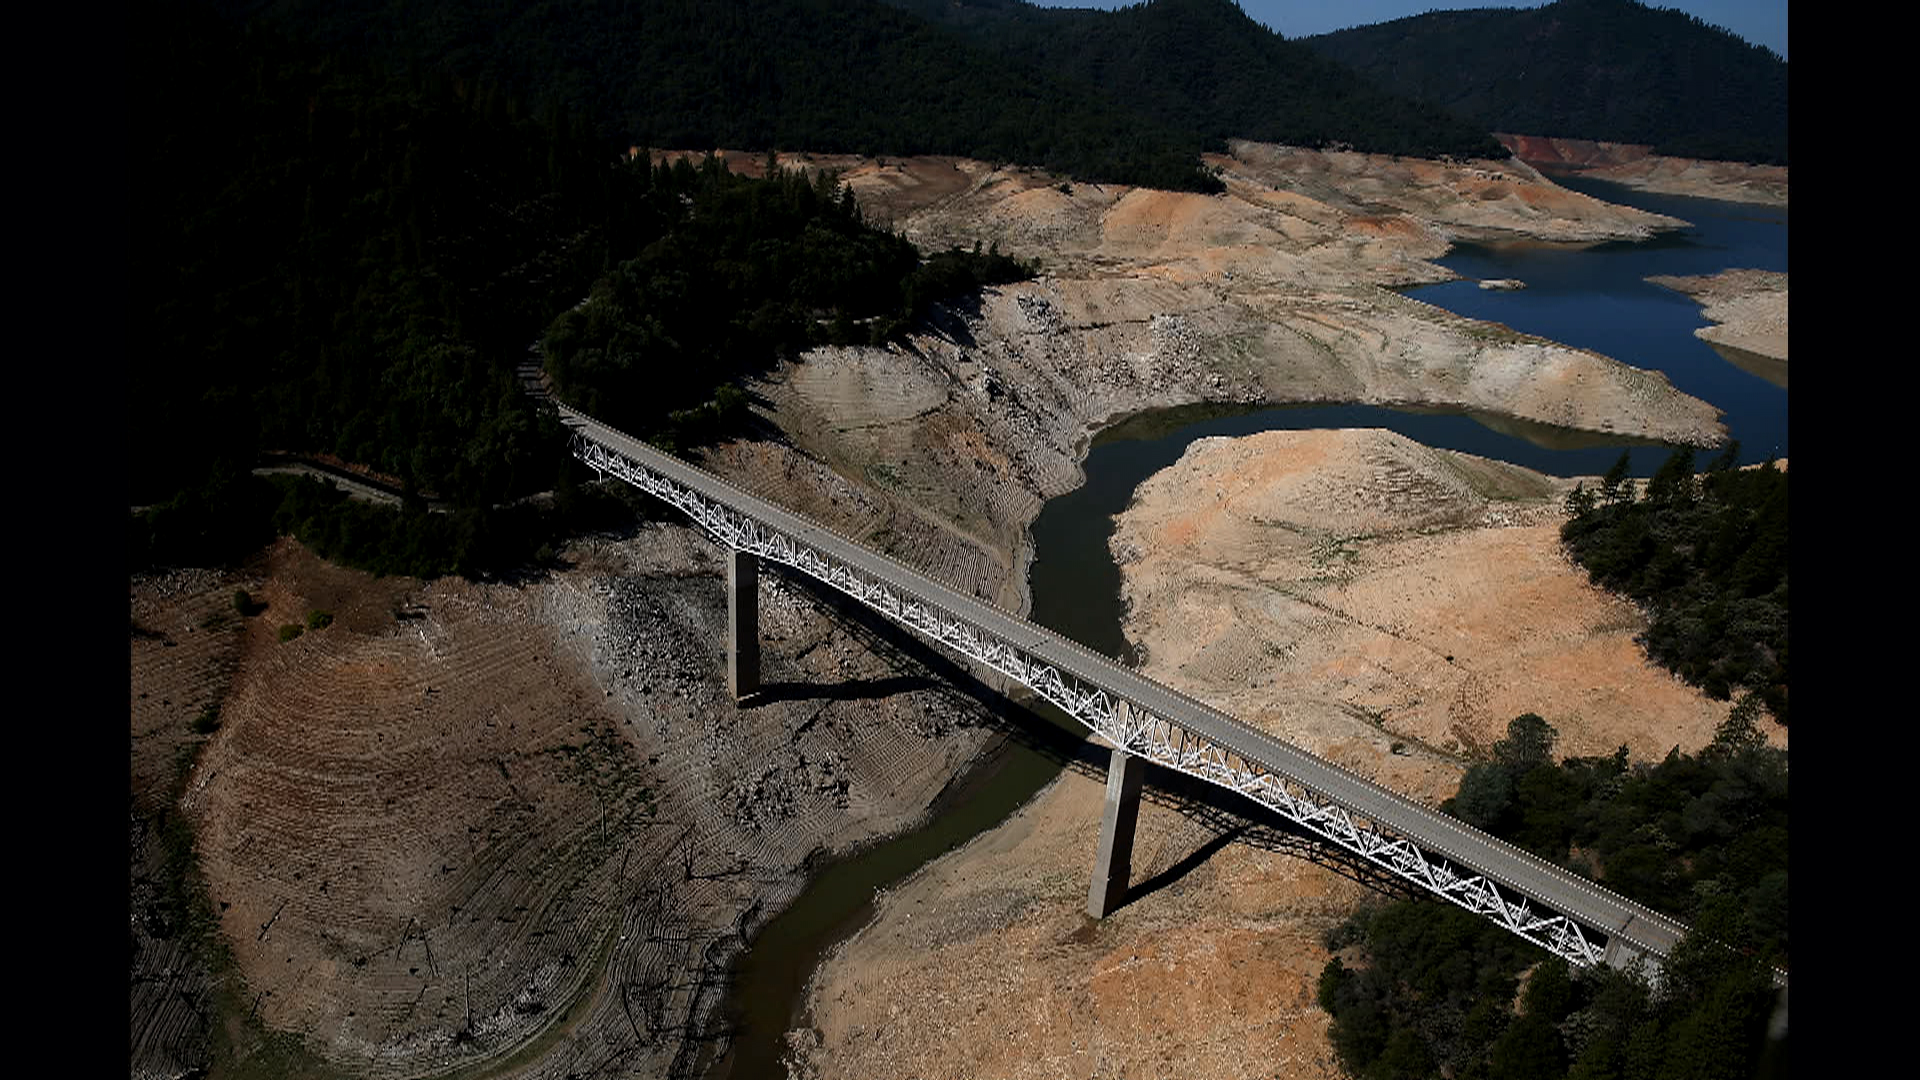 The California Drought: in pictures